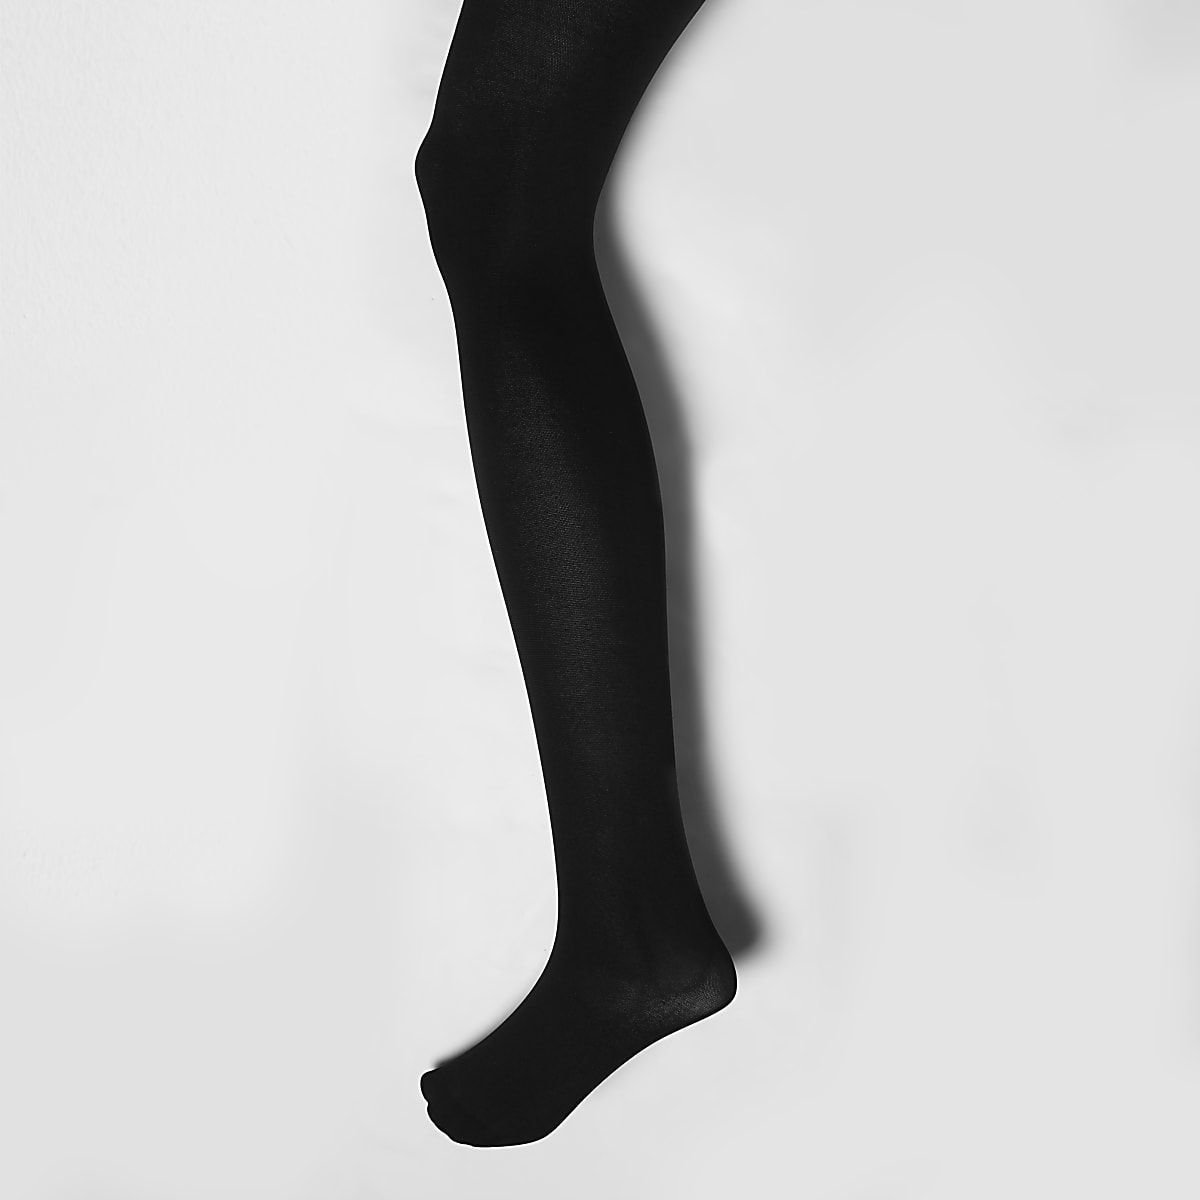 031b99a1b53 Black 80 denier tights - Tights   Socks - women